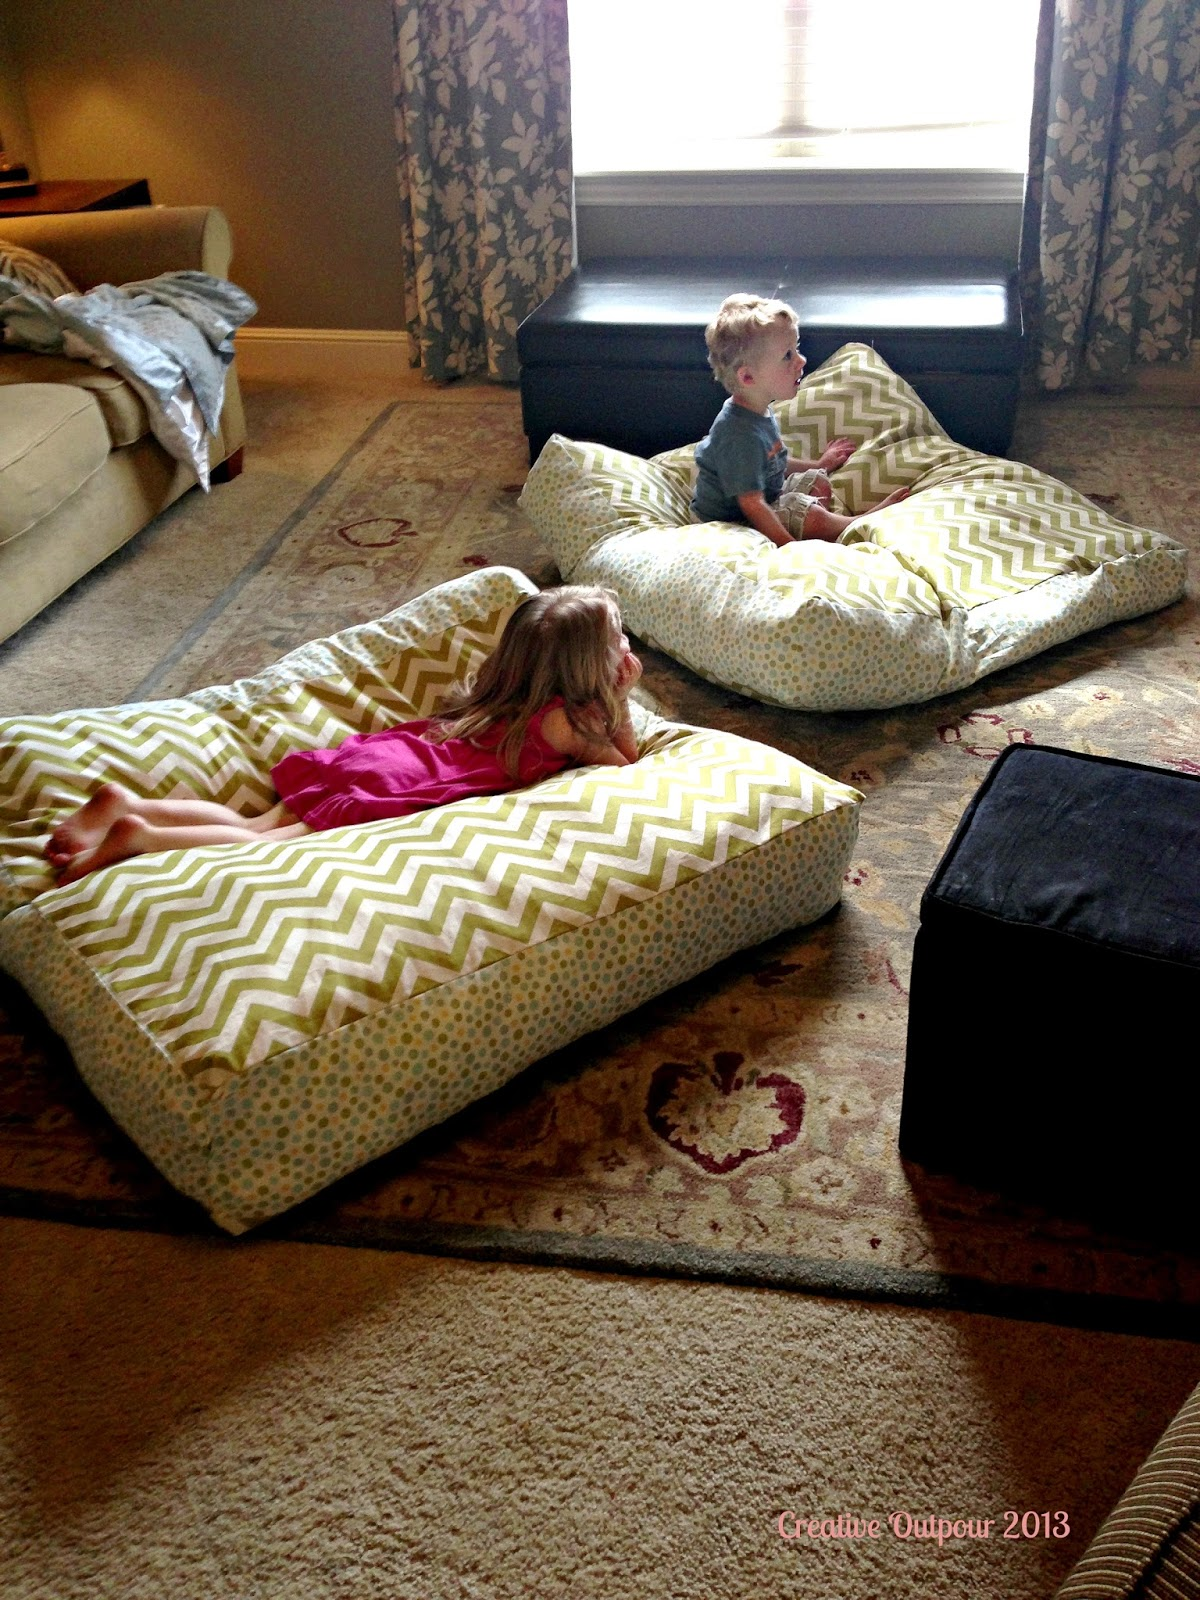 Oversized Decorative Pillows For Bed : Floor Pillows Completed! - Creative Outpour